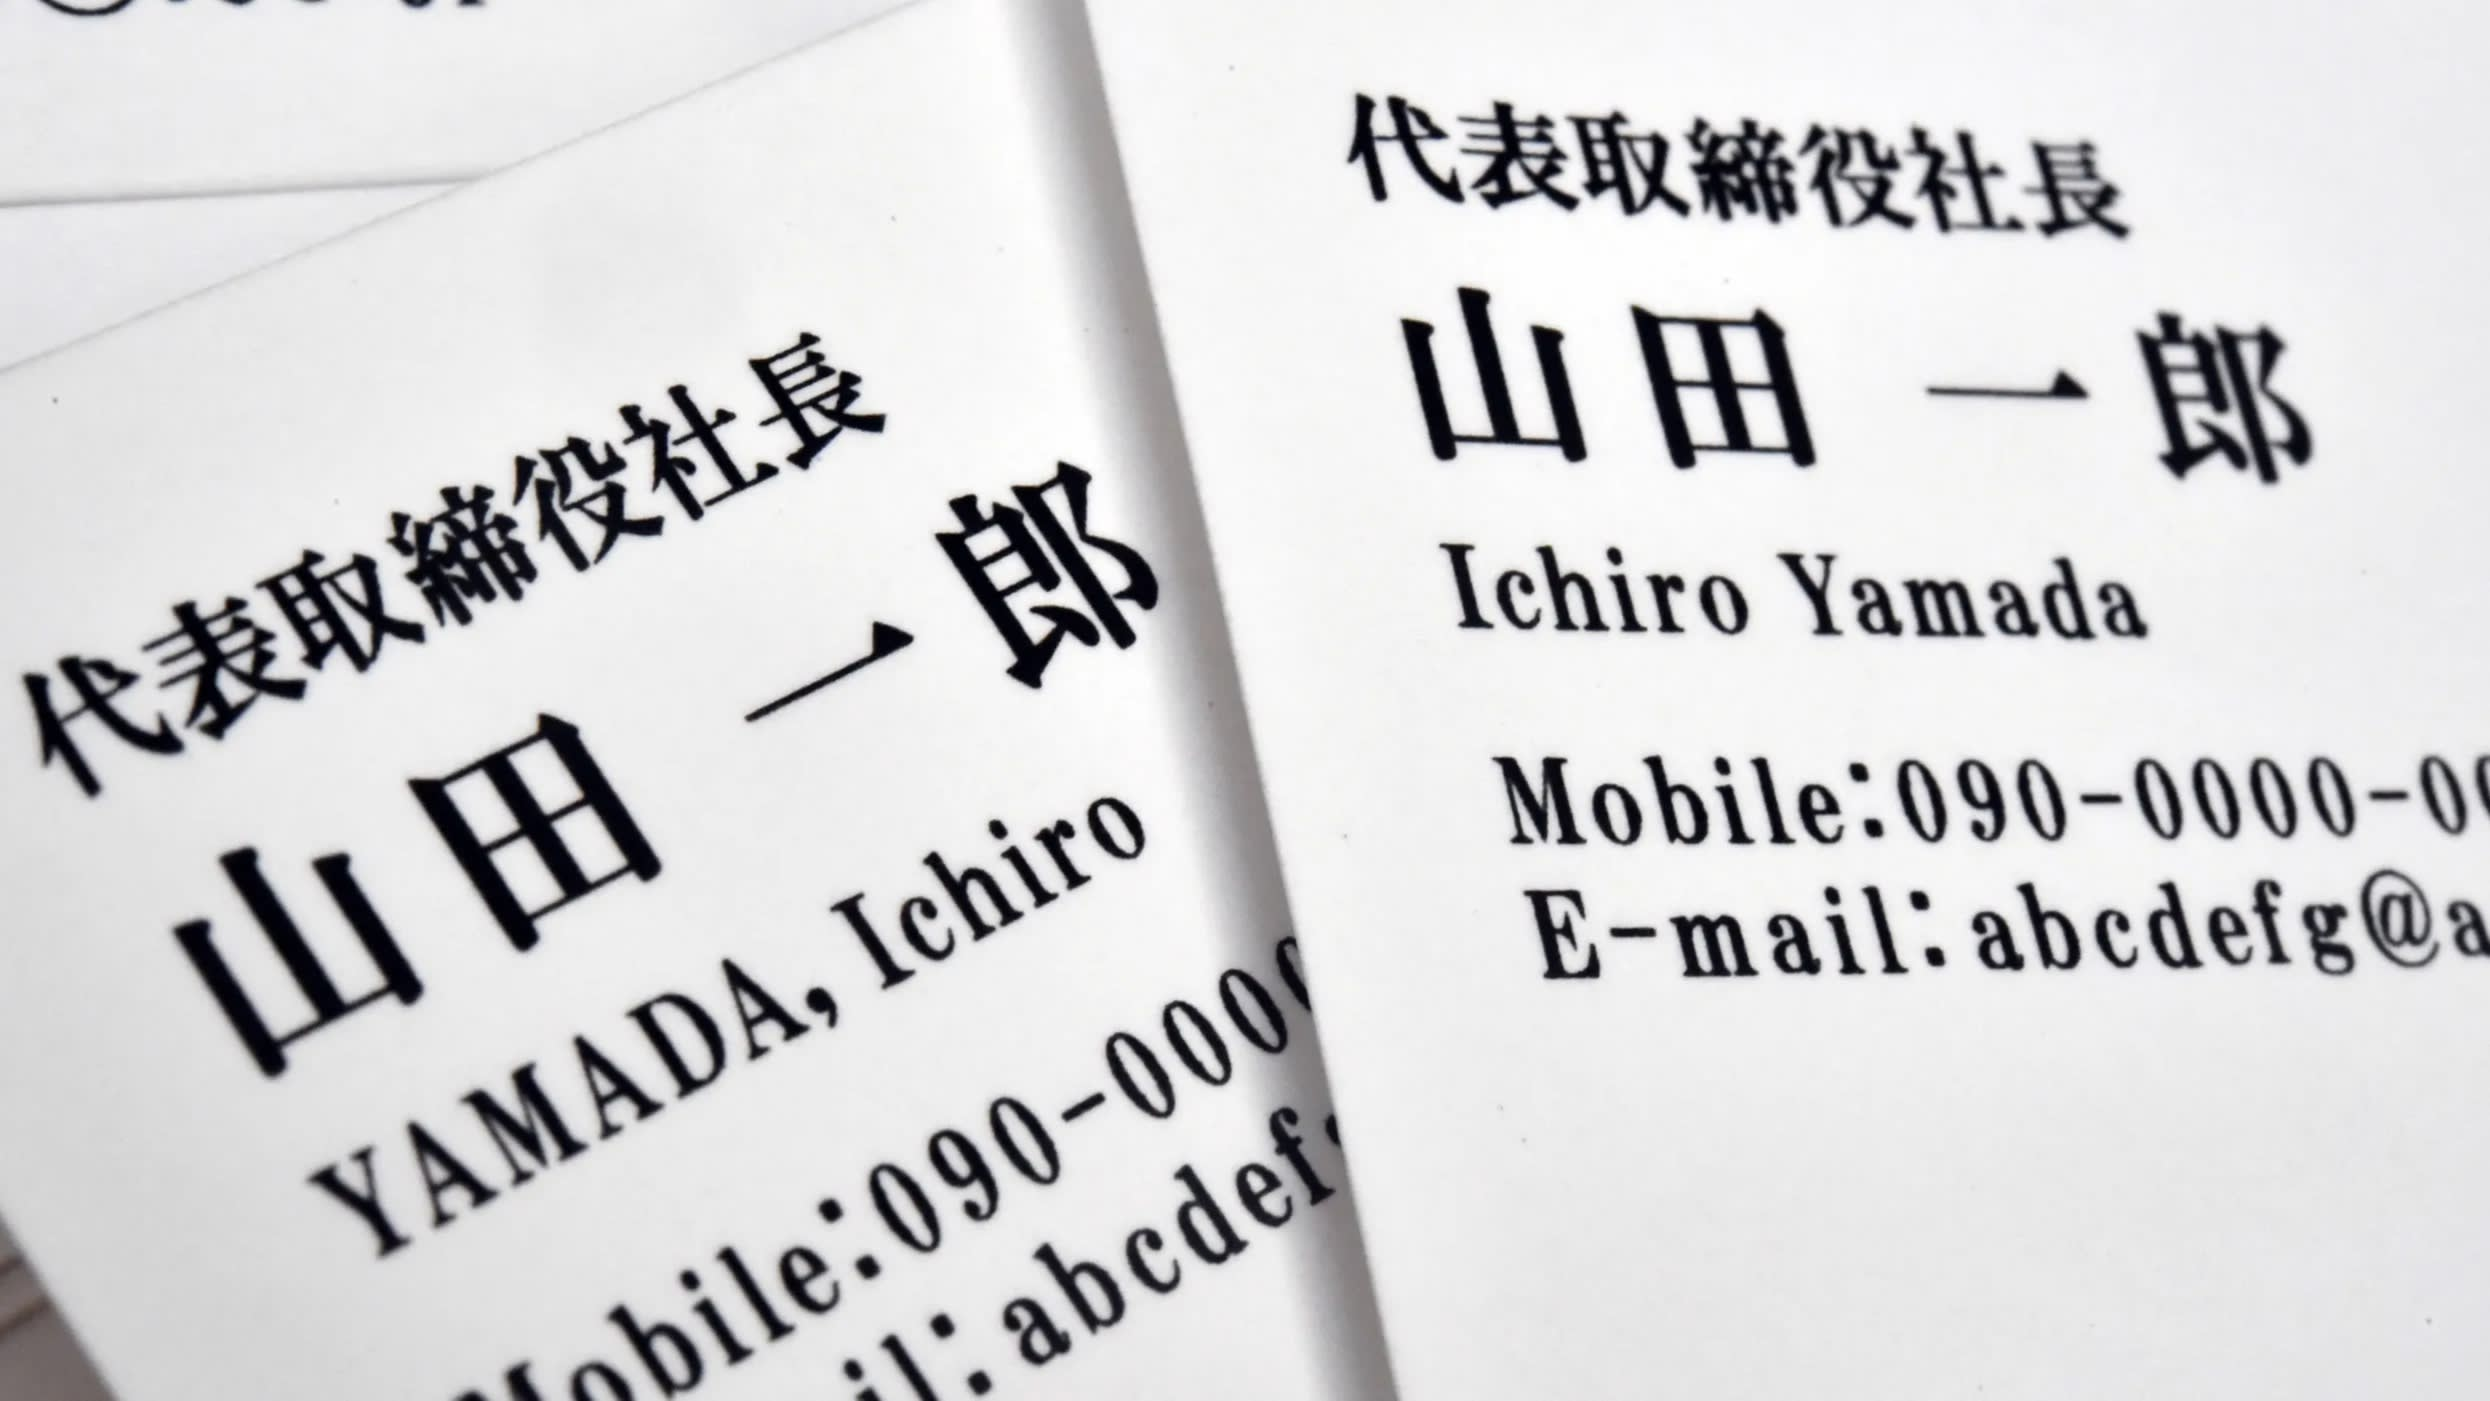 Japan government documents to put family names first